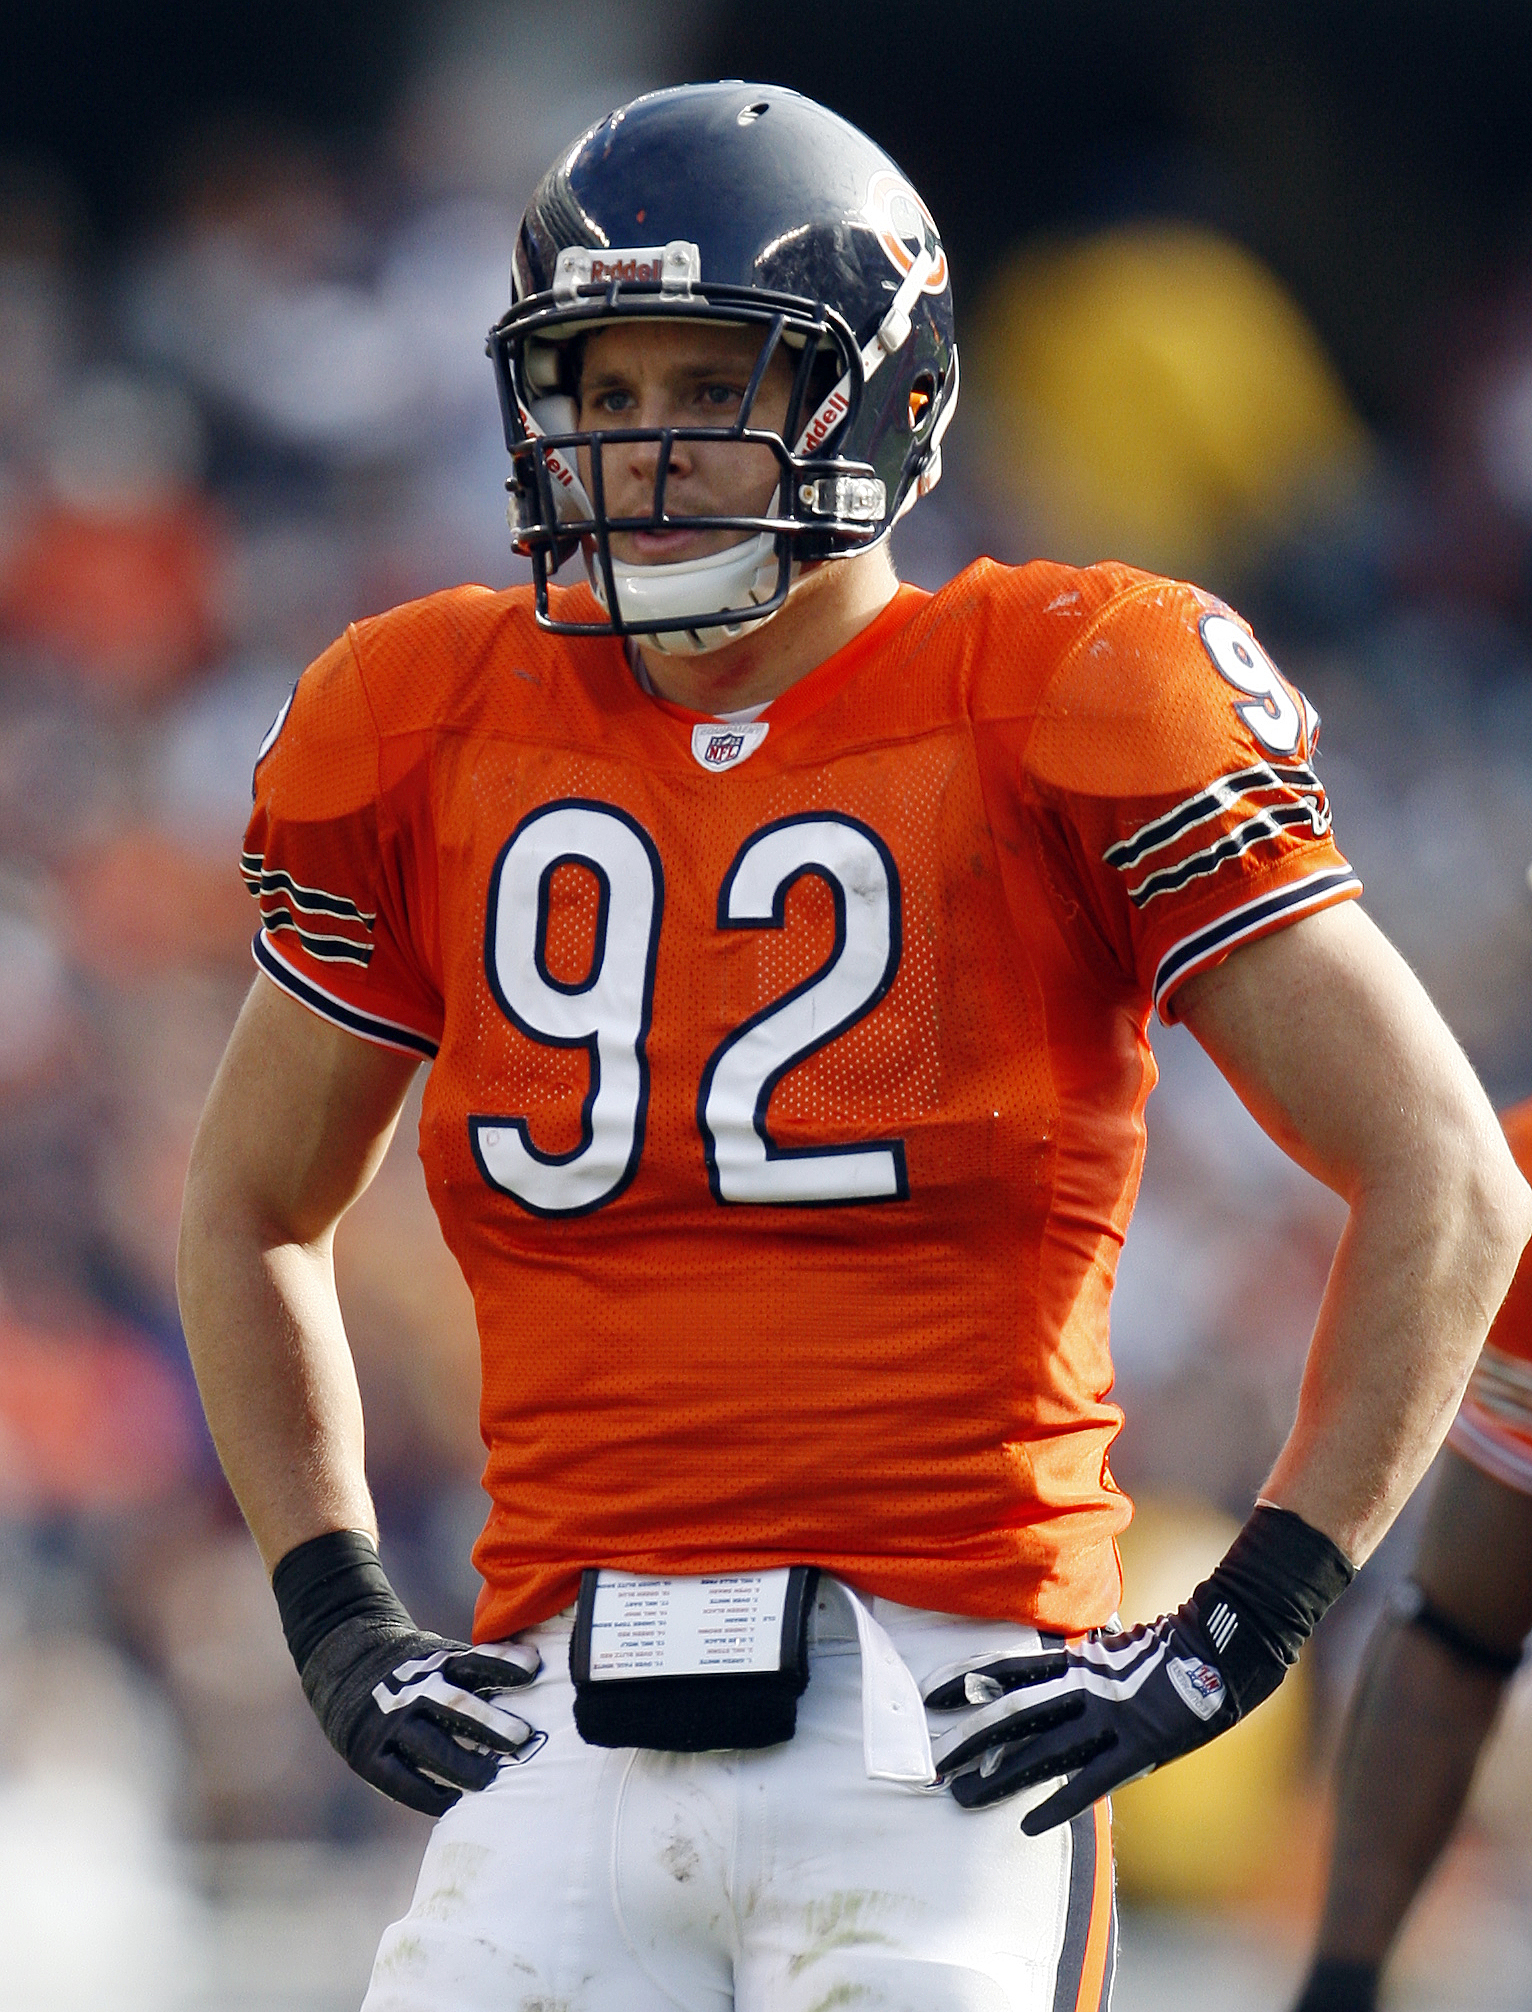 FILE - In this Nov. 1, 2009, file photo, Chicago Bears linebacker Hunter Hillenmeyer gets ready during an NFL football game against the Cleveland Browns in Chicago. The Ohio Supreme Court has found unconstitutional the method that Cleveland uses for taxin